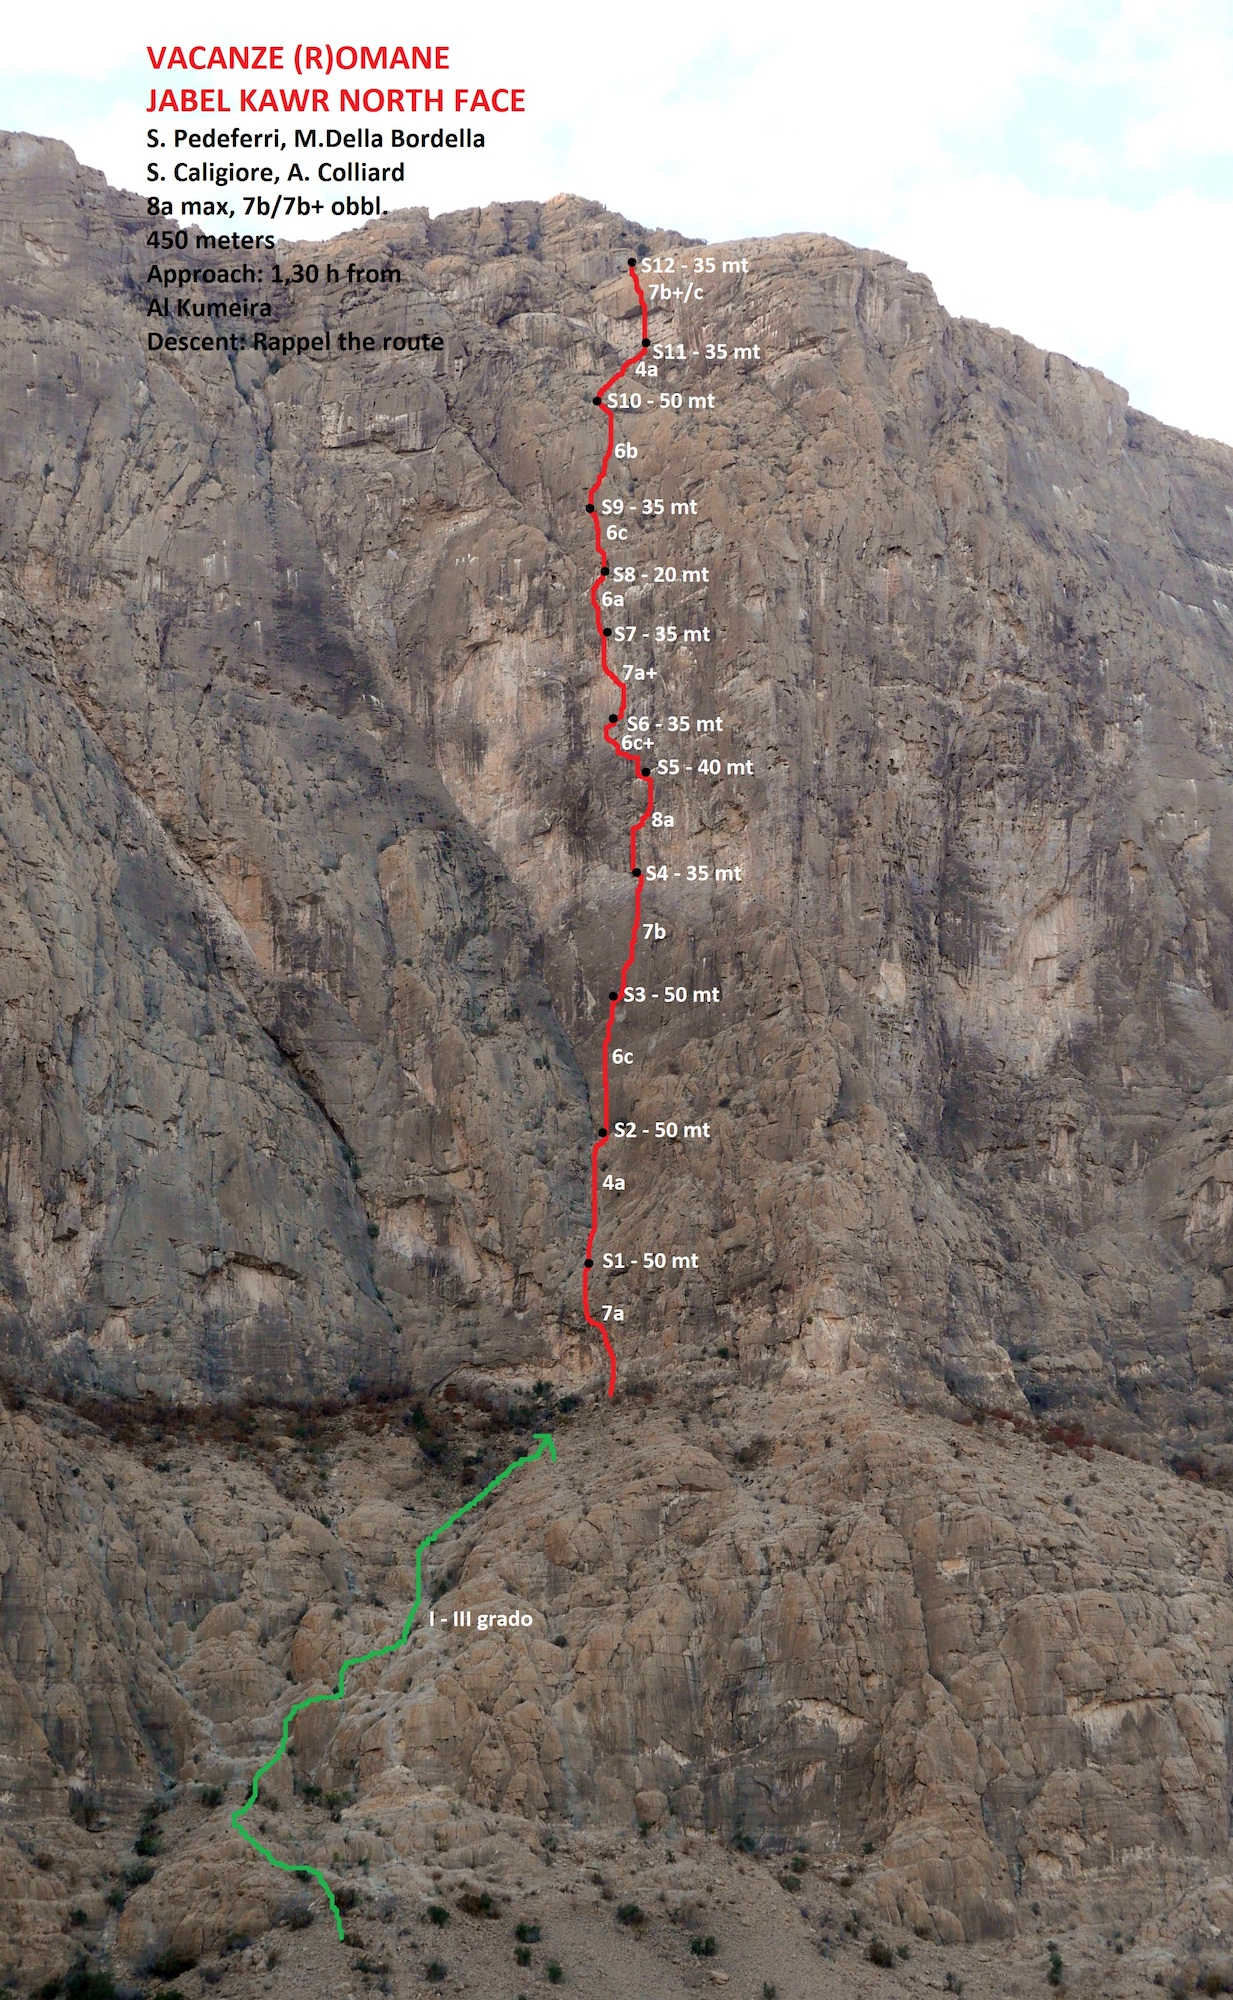 Topo of the 2018 route of Vacanze (R)omane on Jebel Kawr.